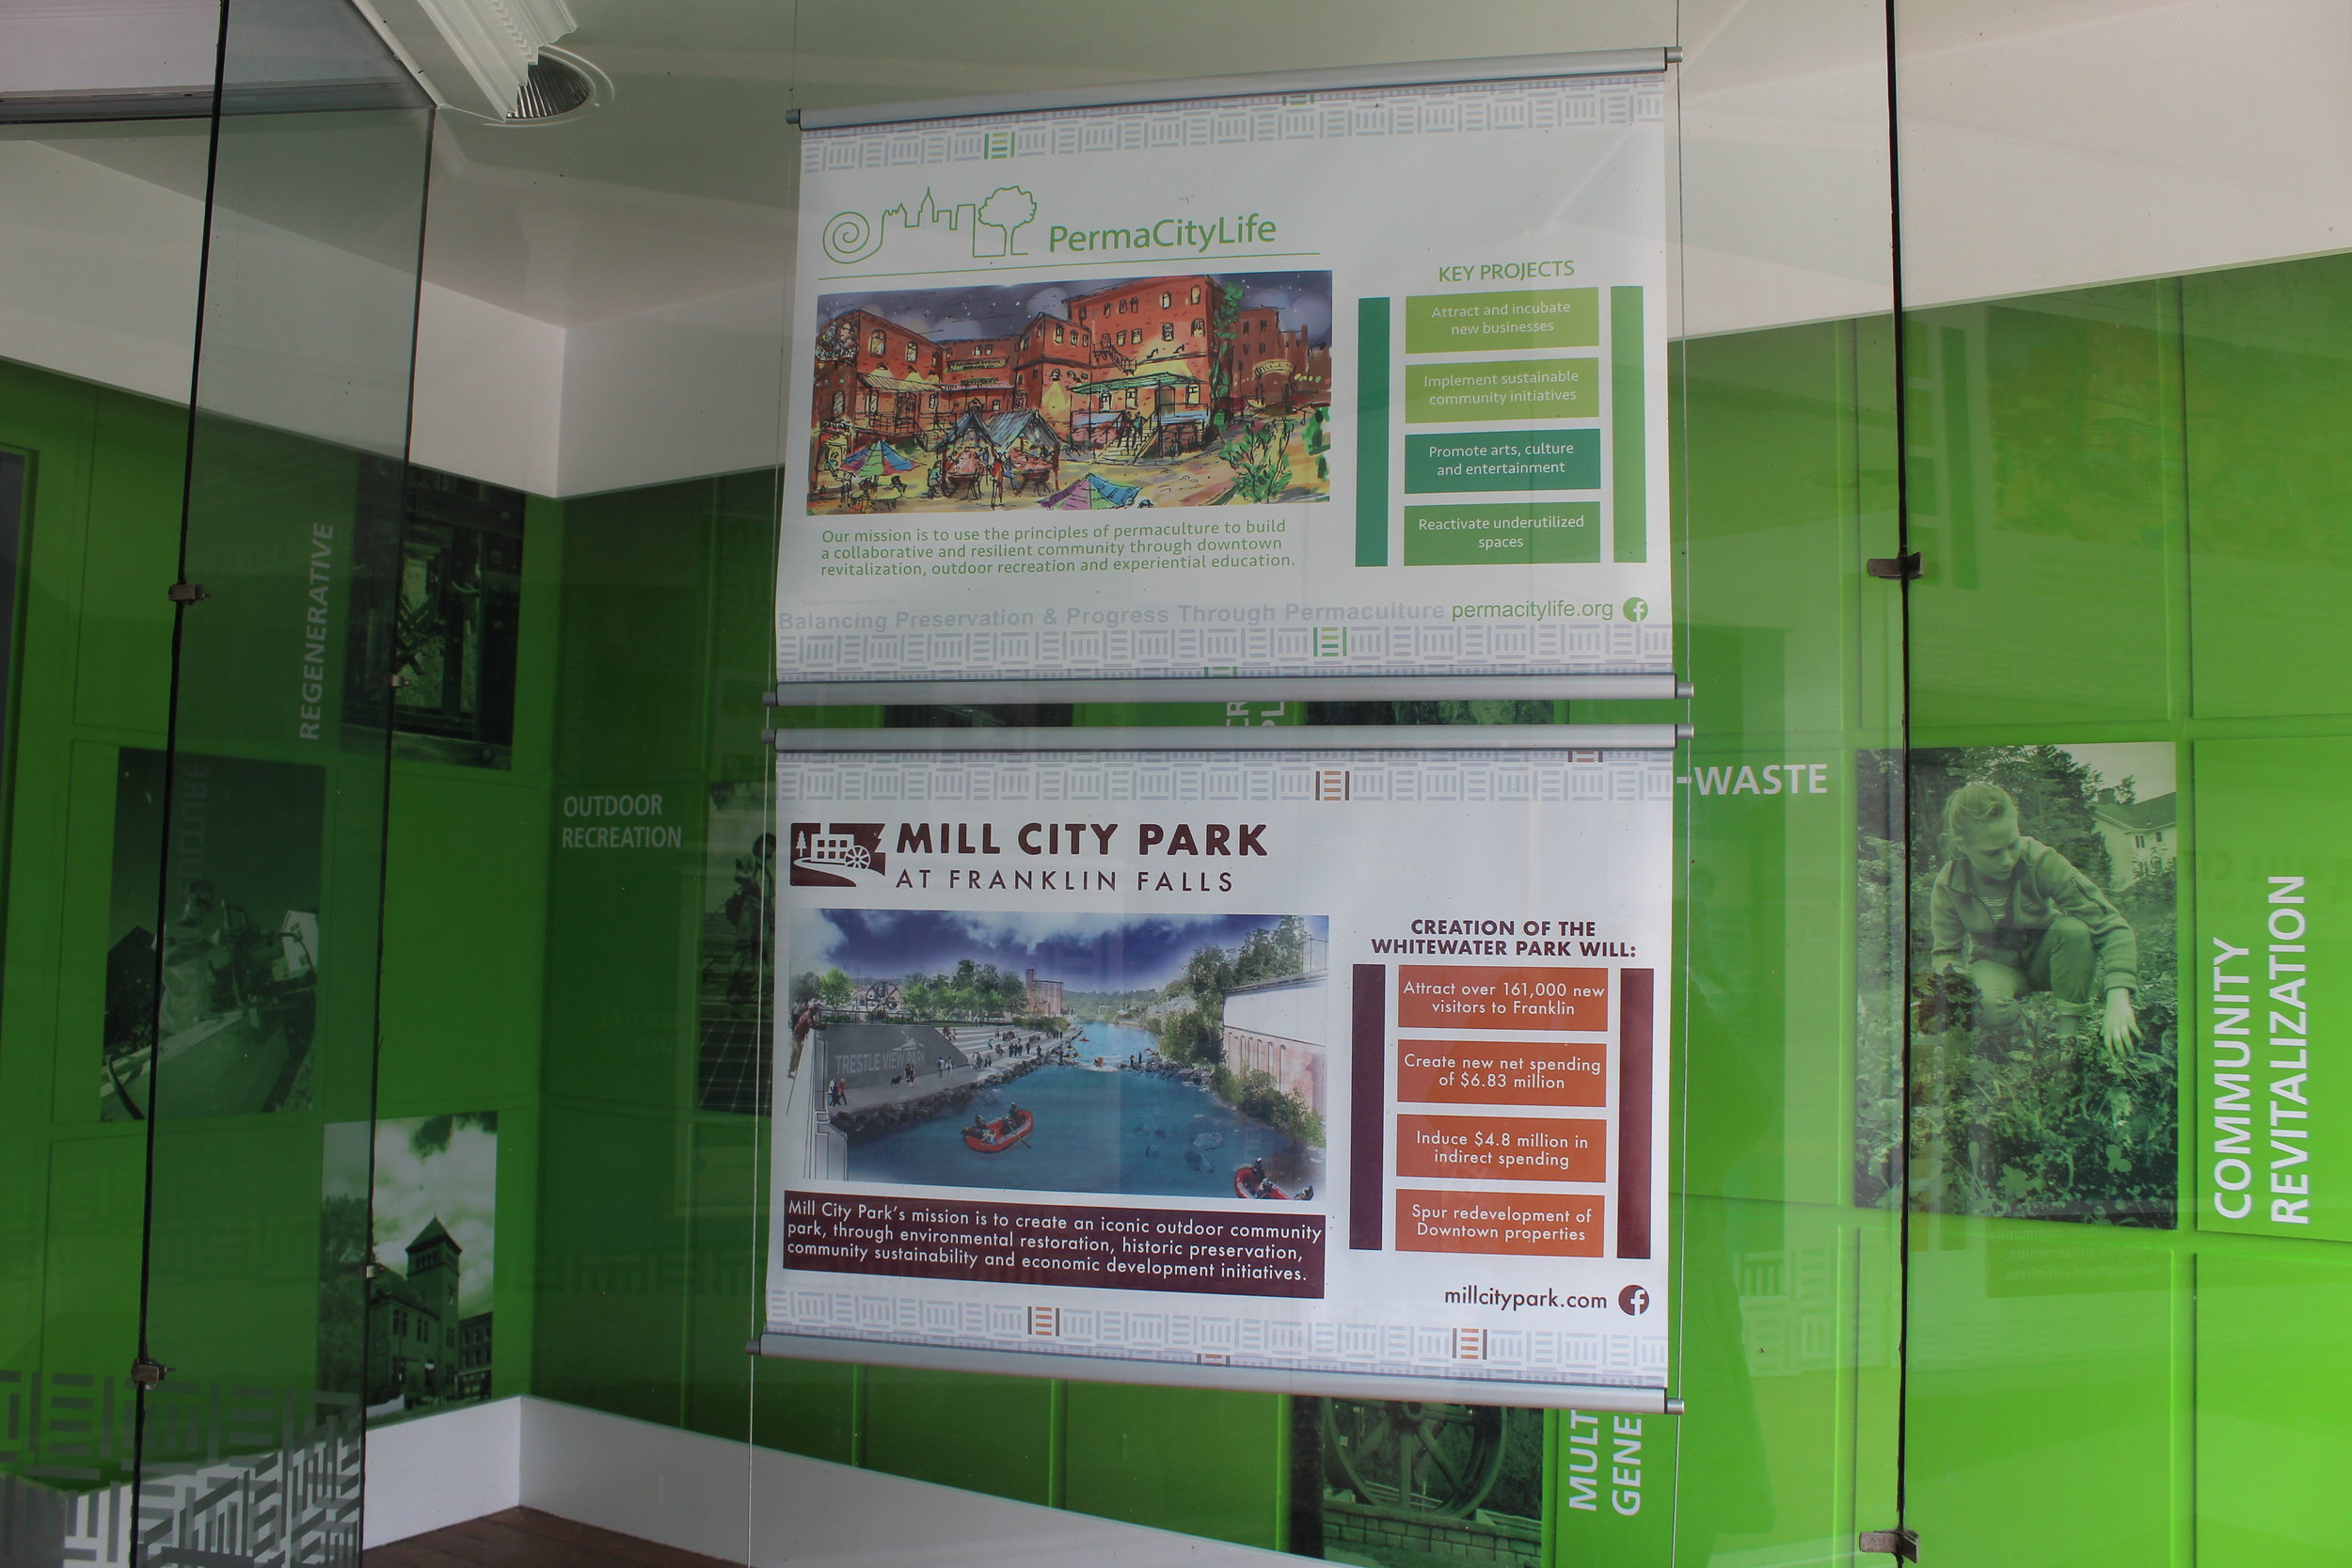 Melanie Patria's designs for advertising PermaCityLife and Mill City Park hanging in the SLI storefront (The Hub at 357 Central Street in downtown Franklin.